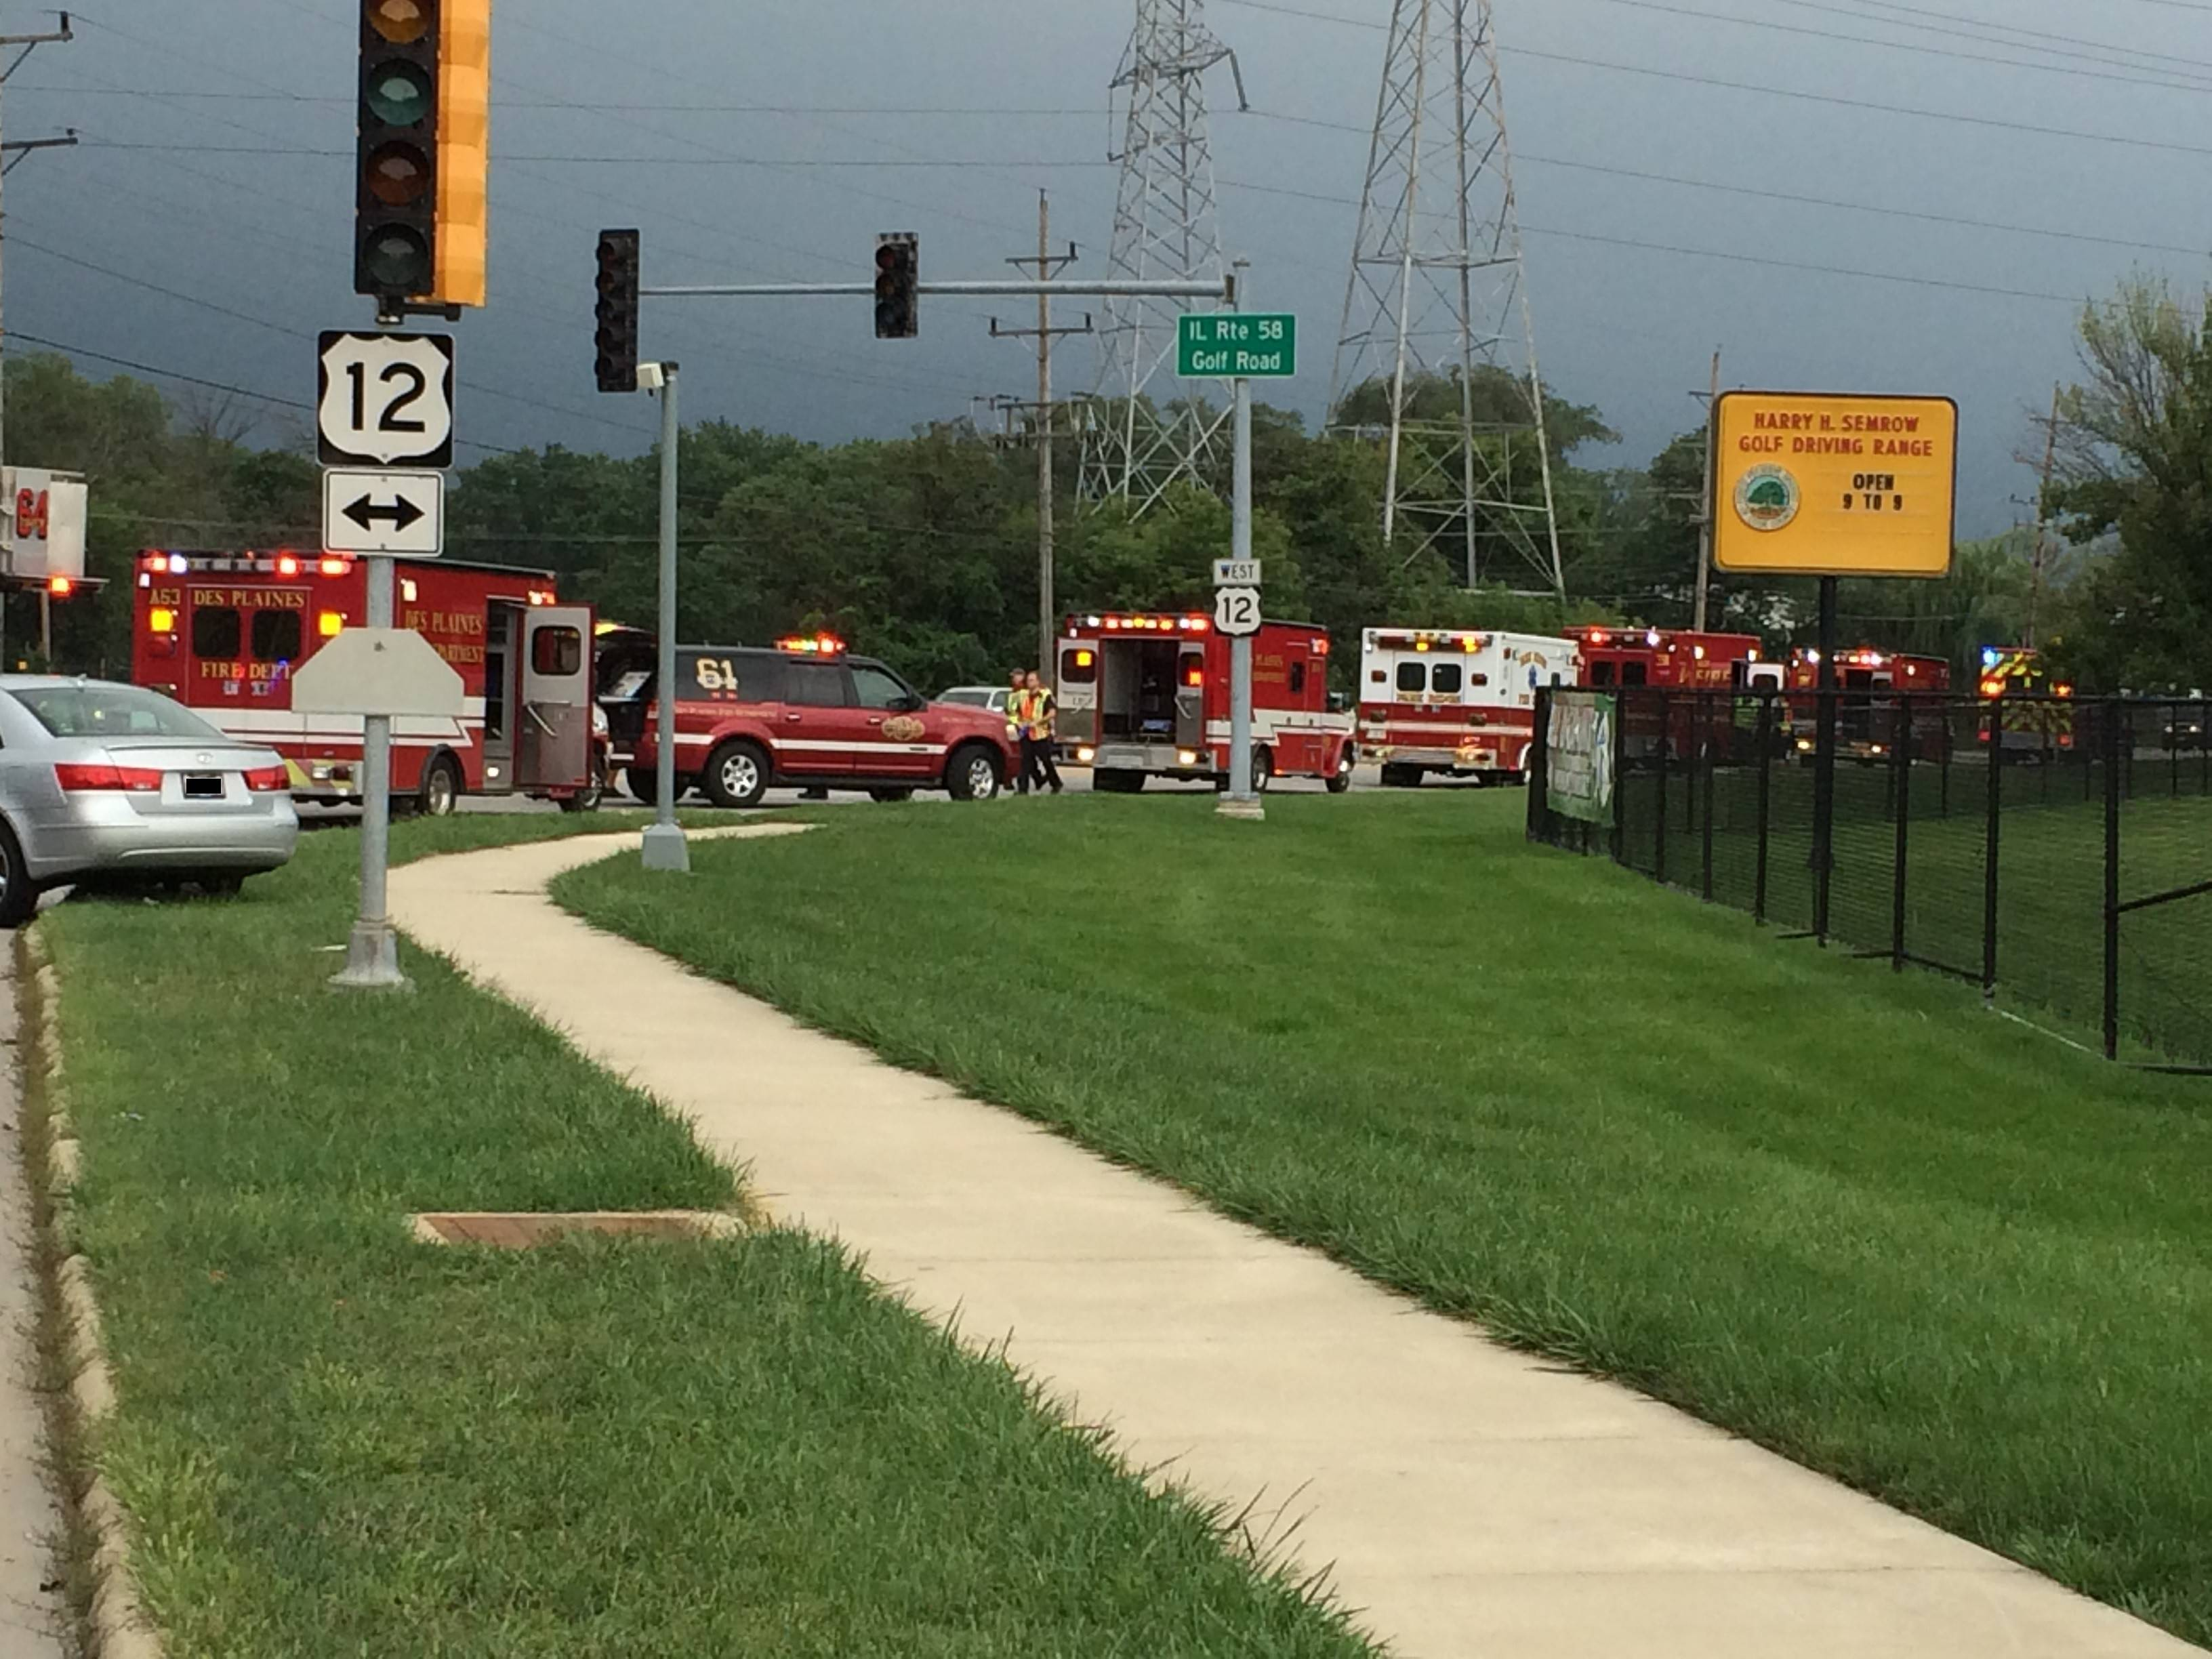 Des Plaines fire officials requested extra manpower and ambulances from Northwest suburban departments to respond to a three-vehicle crash Saturday at Golf and Rand roads.